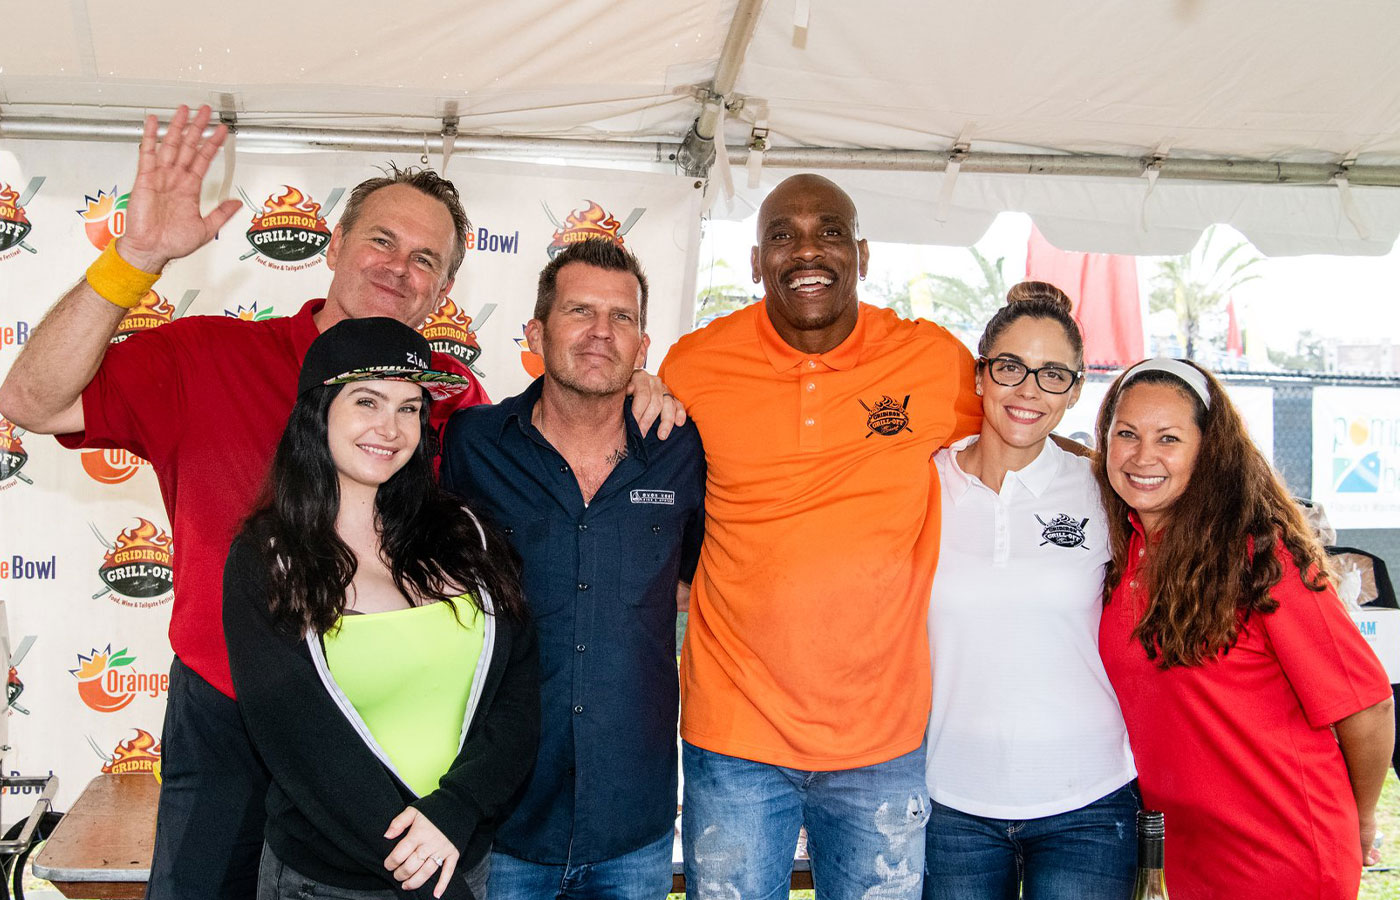 Denison sponsor Gridiron Grill-Off Food Wine and Music Festival